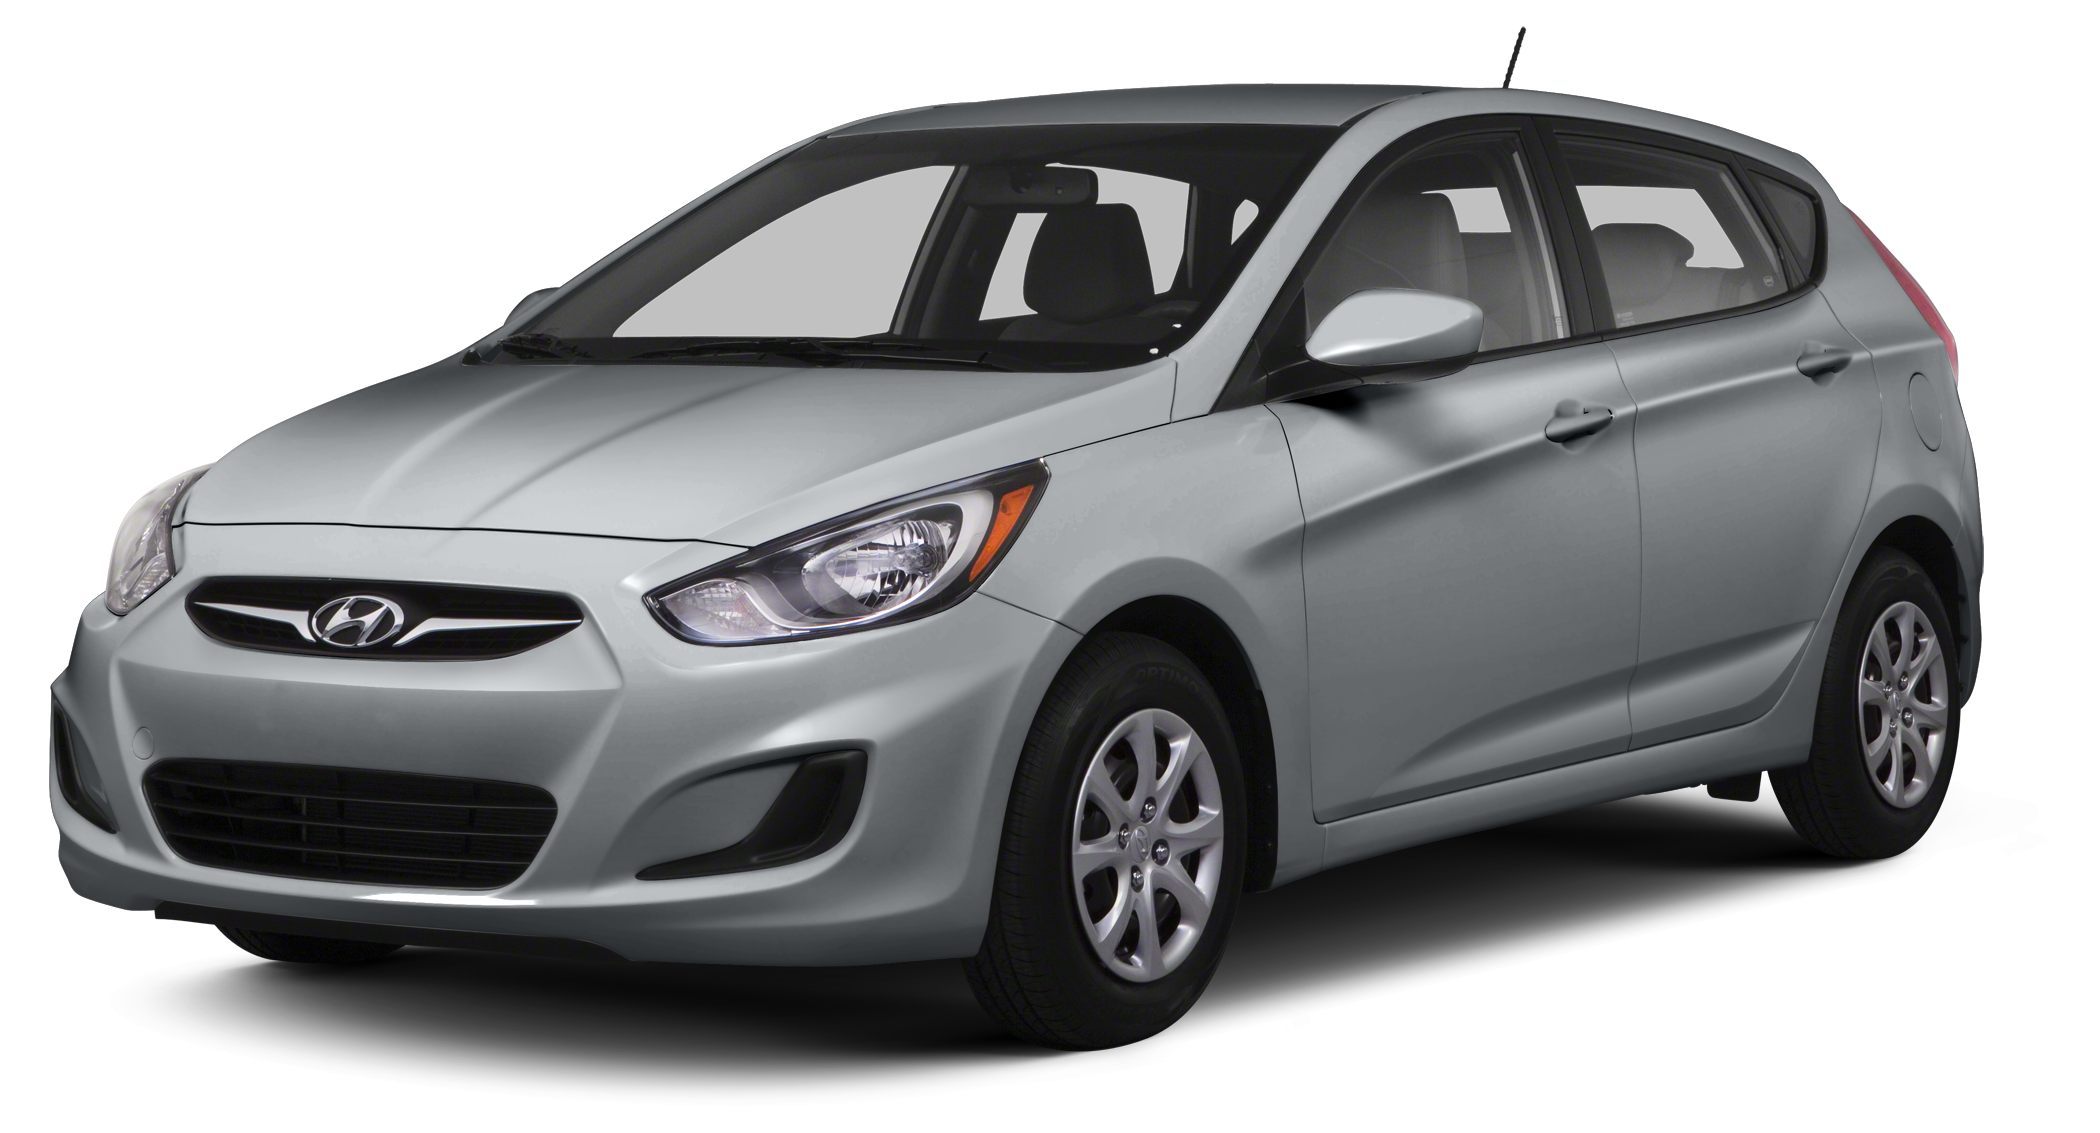 2013 Hyundai Accent GS CARFAX 1-OWNER VEHICLE Manual Value Priced Below Market Fuel Efficient N